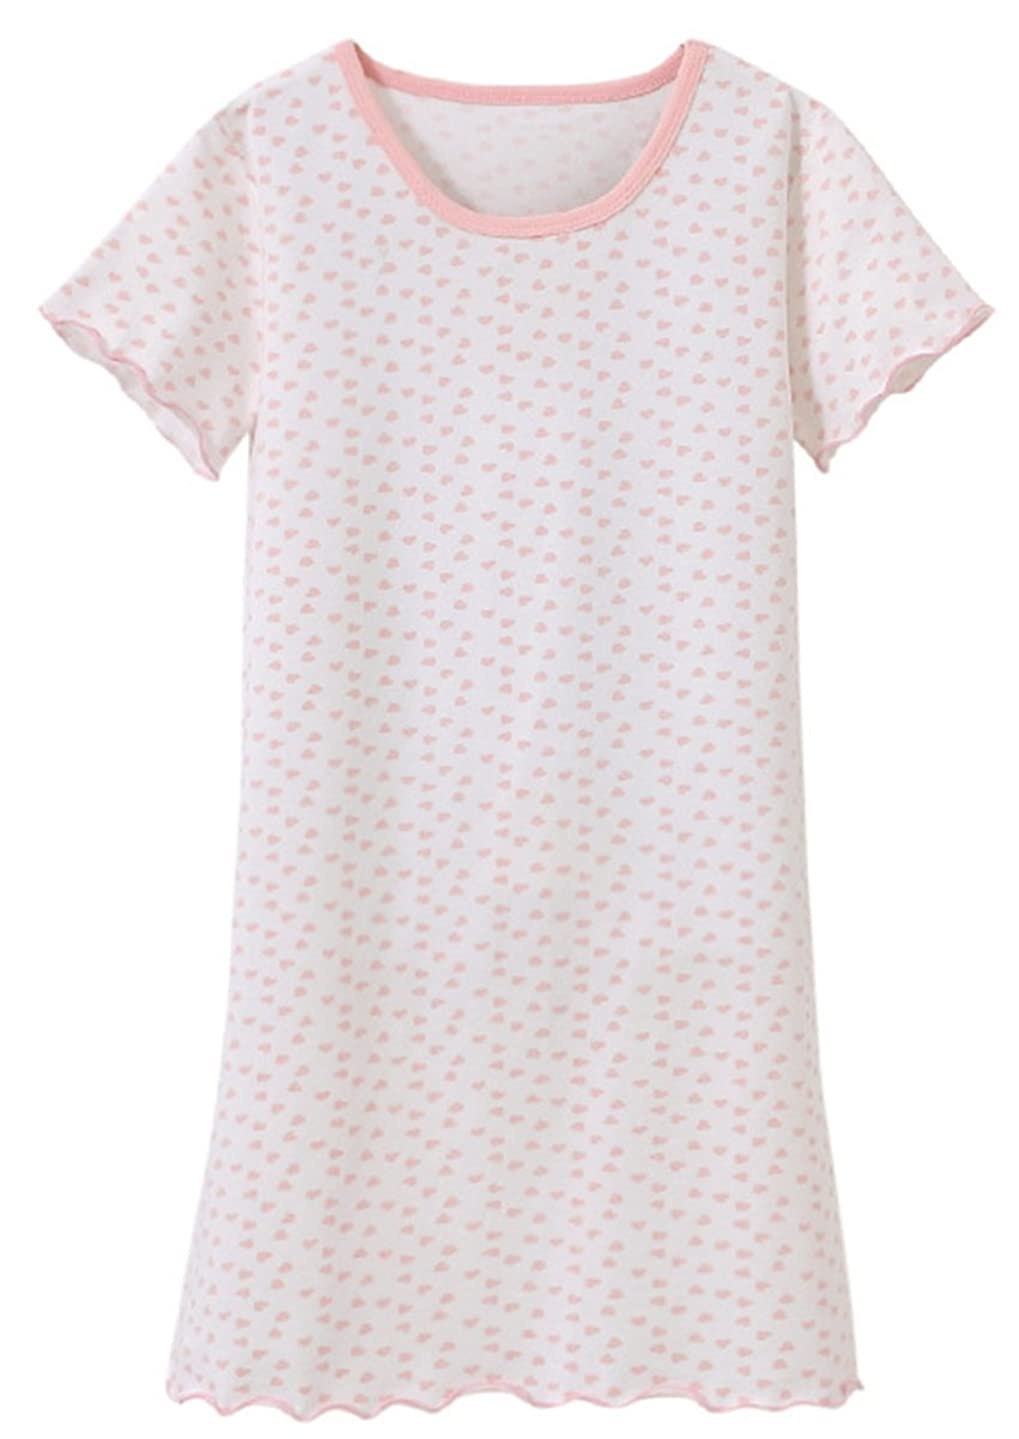 Ameyda Girls' Nightshirt with Heart Print